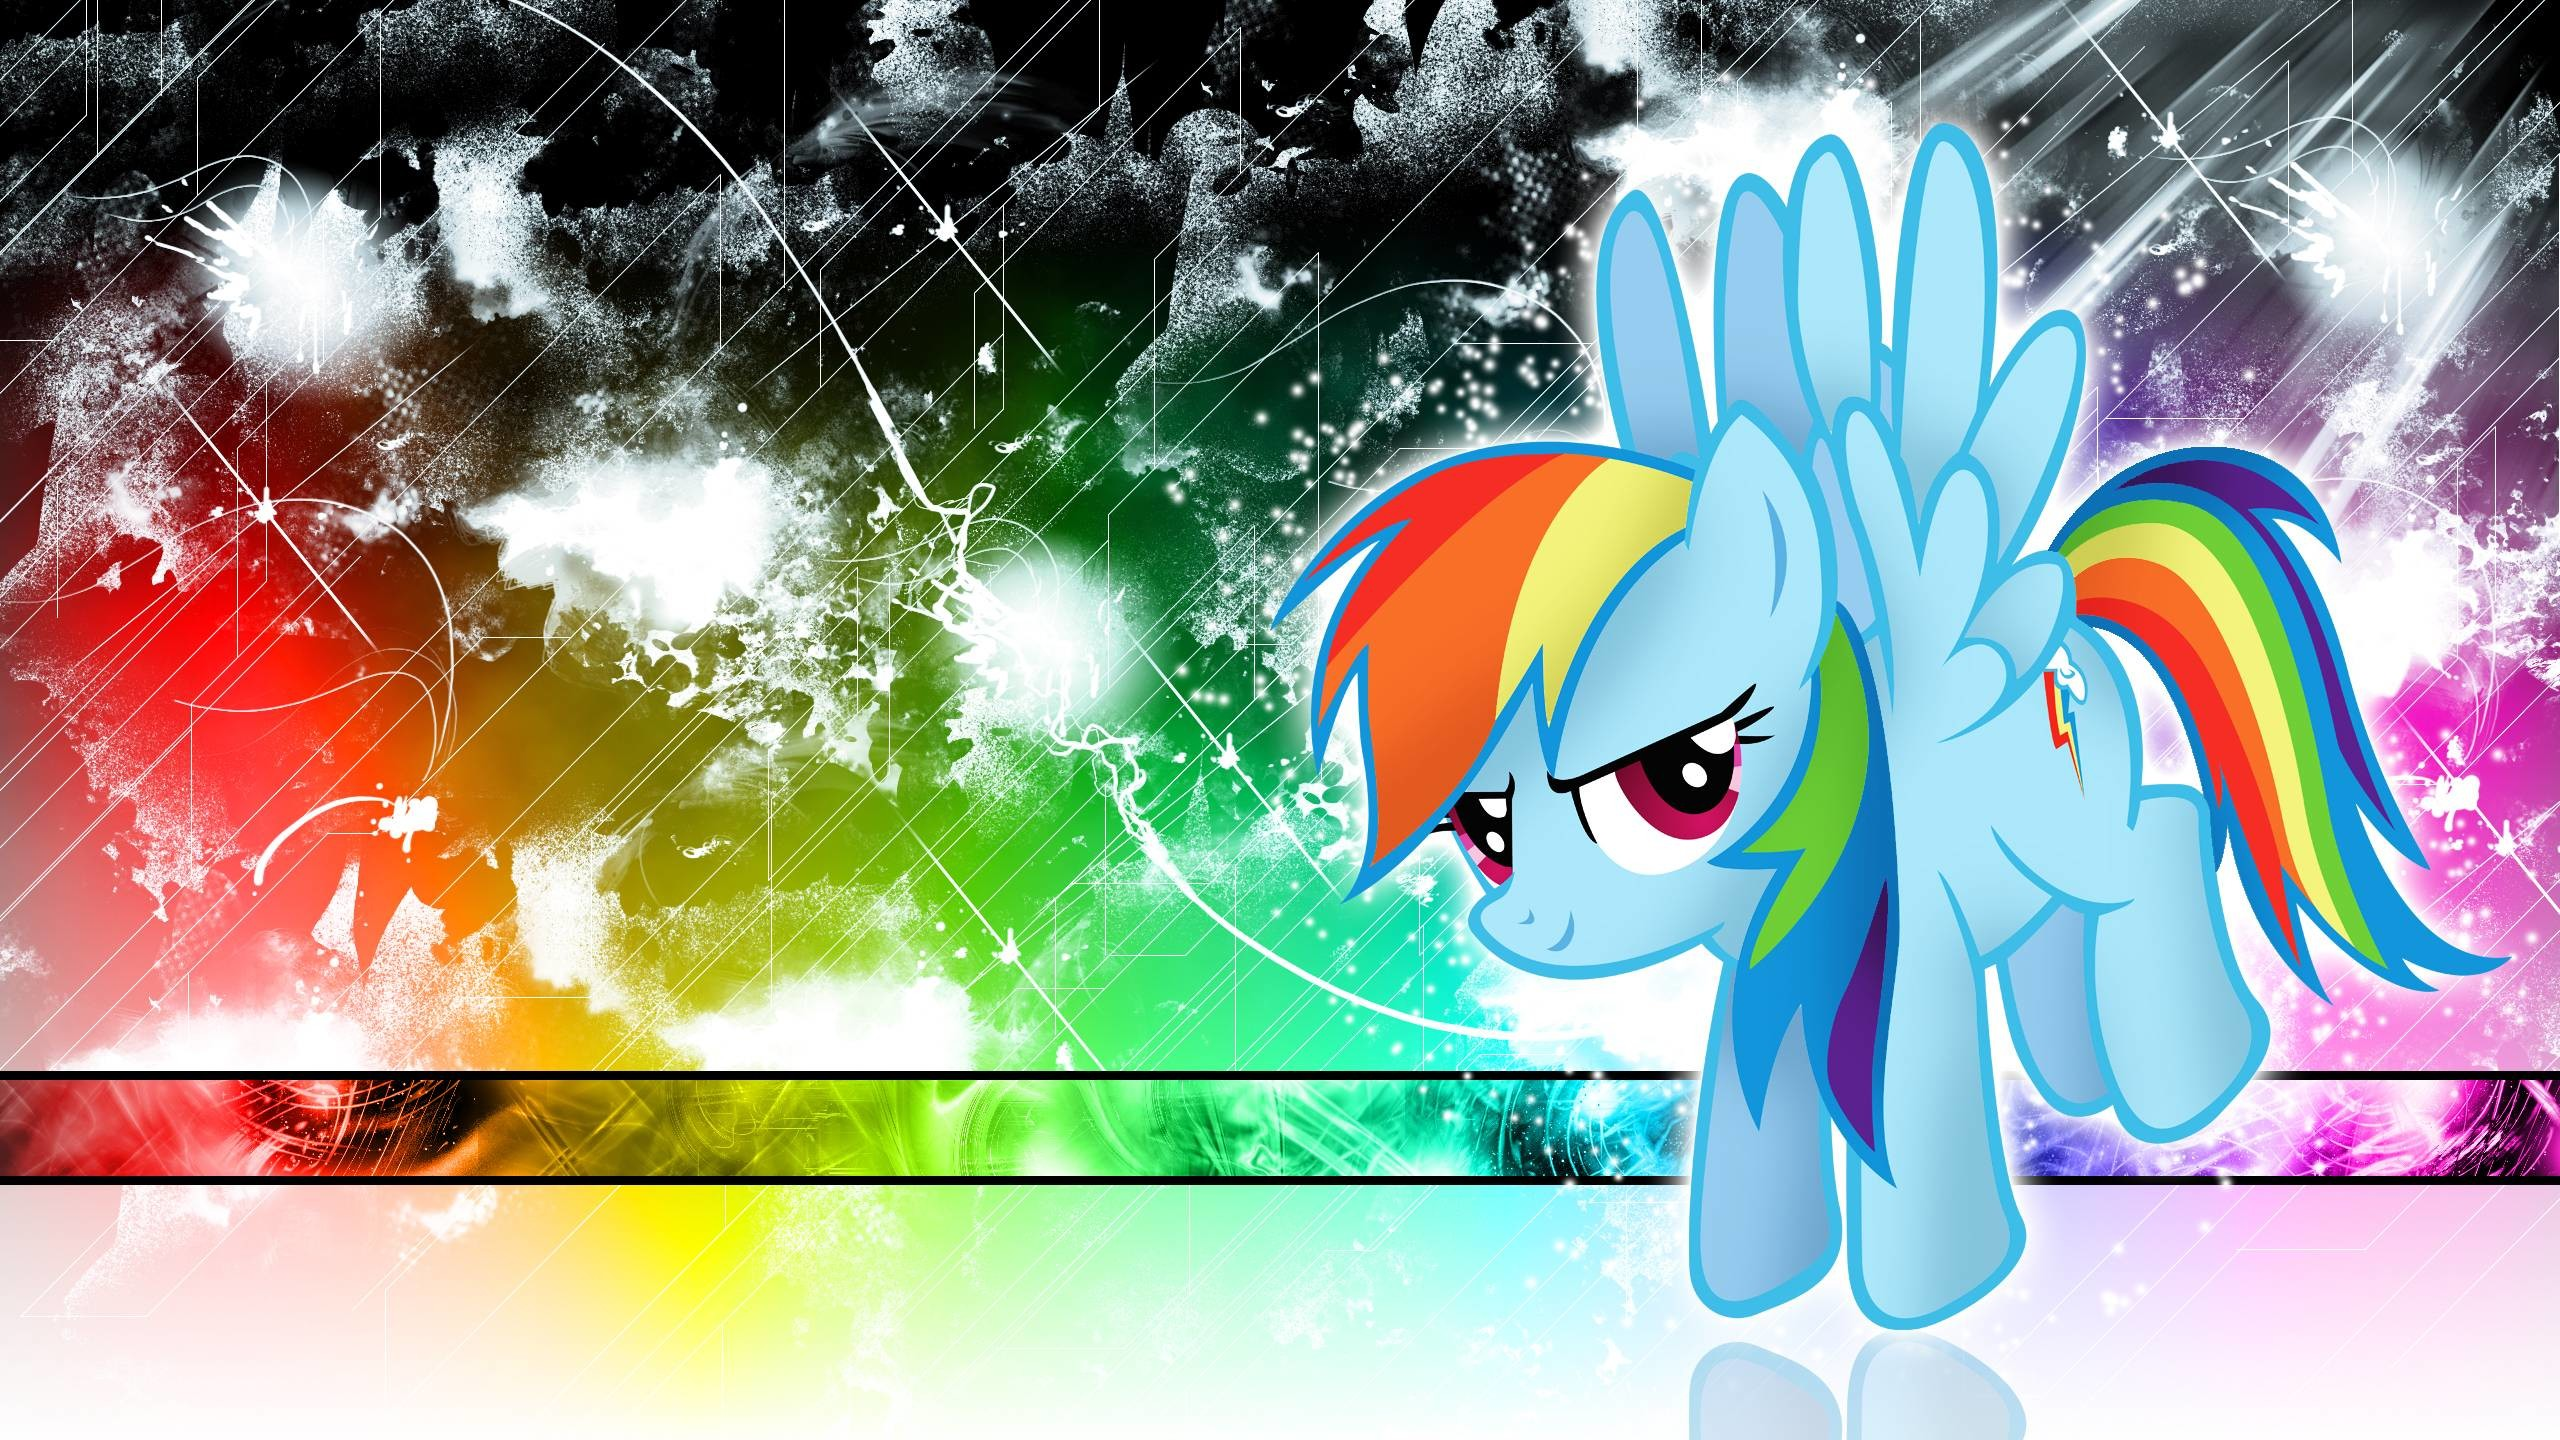 My Little Pony Rainbow Dash Wallpaper (82+ images)